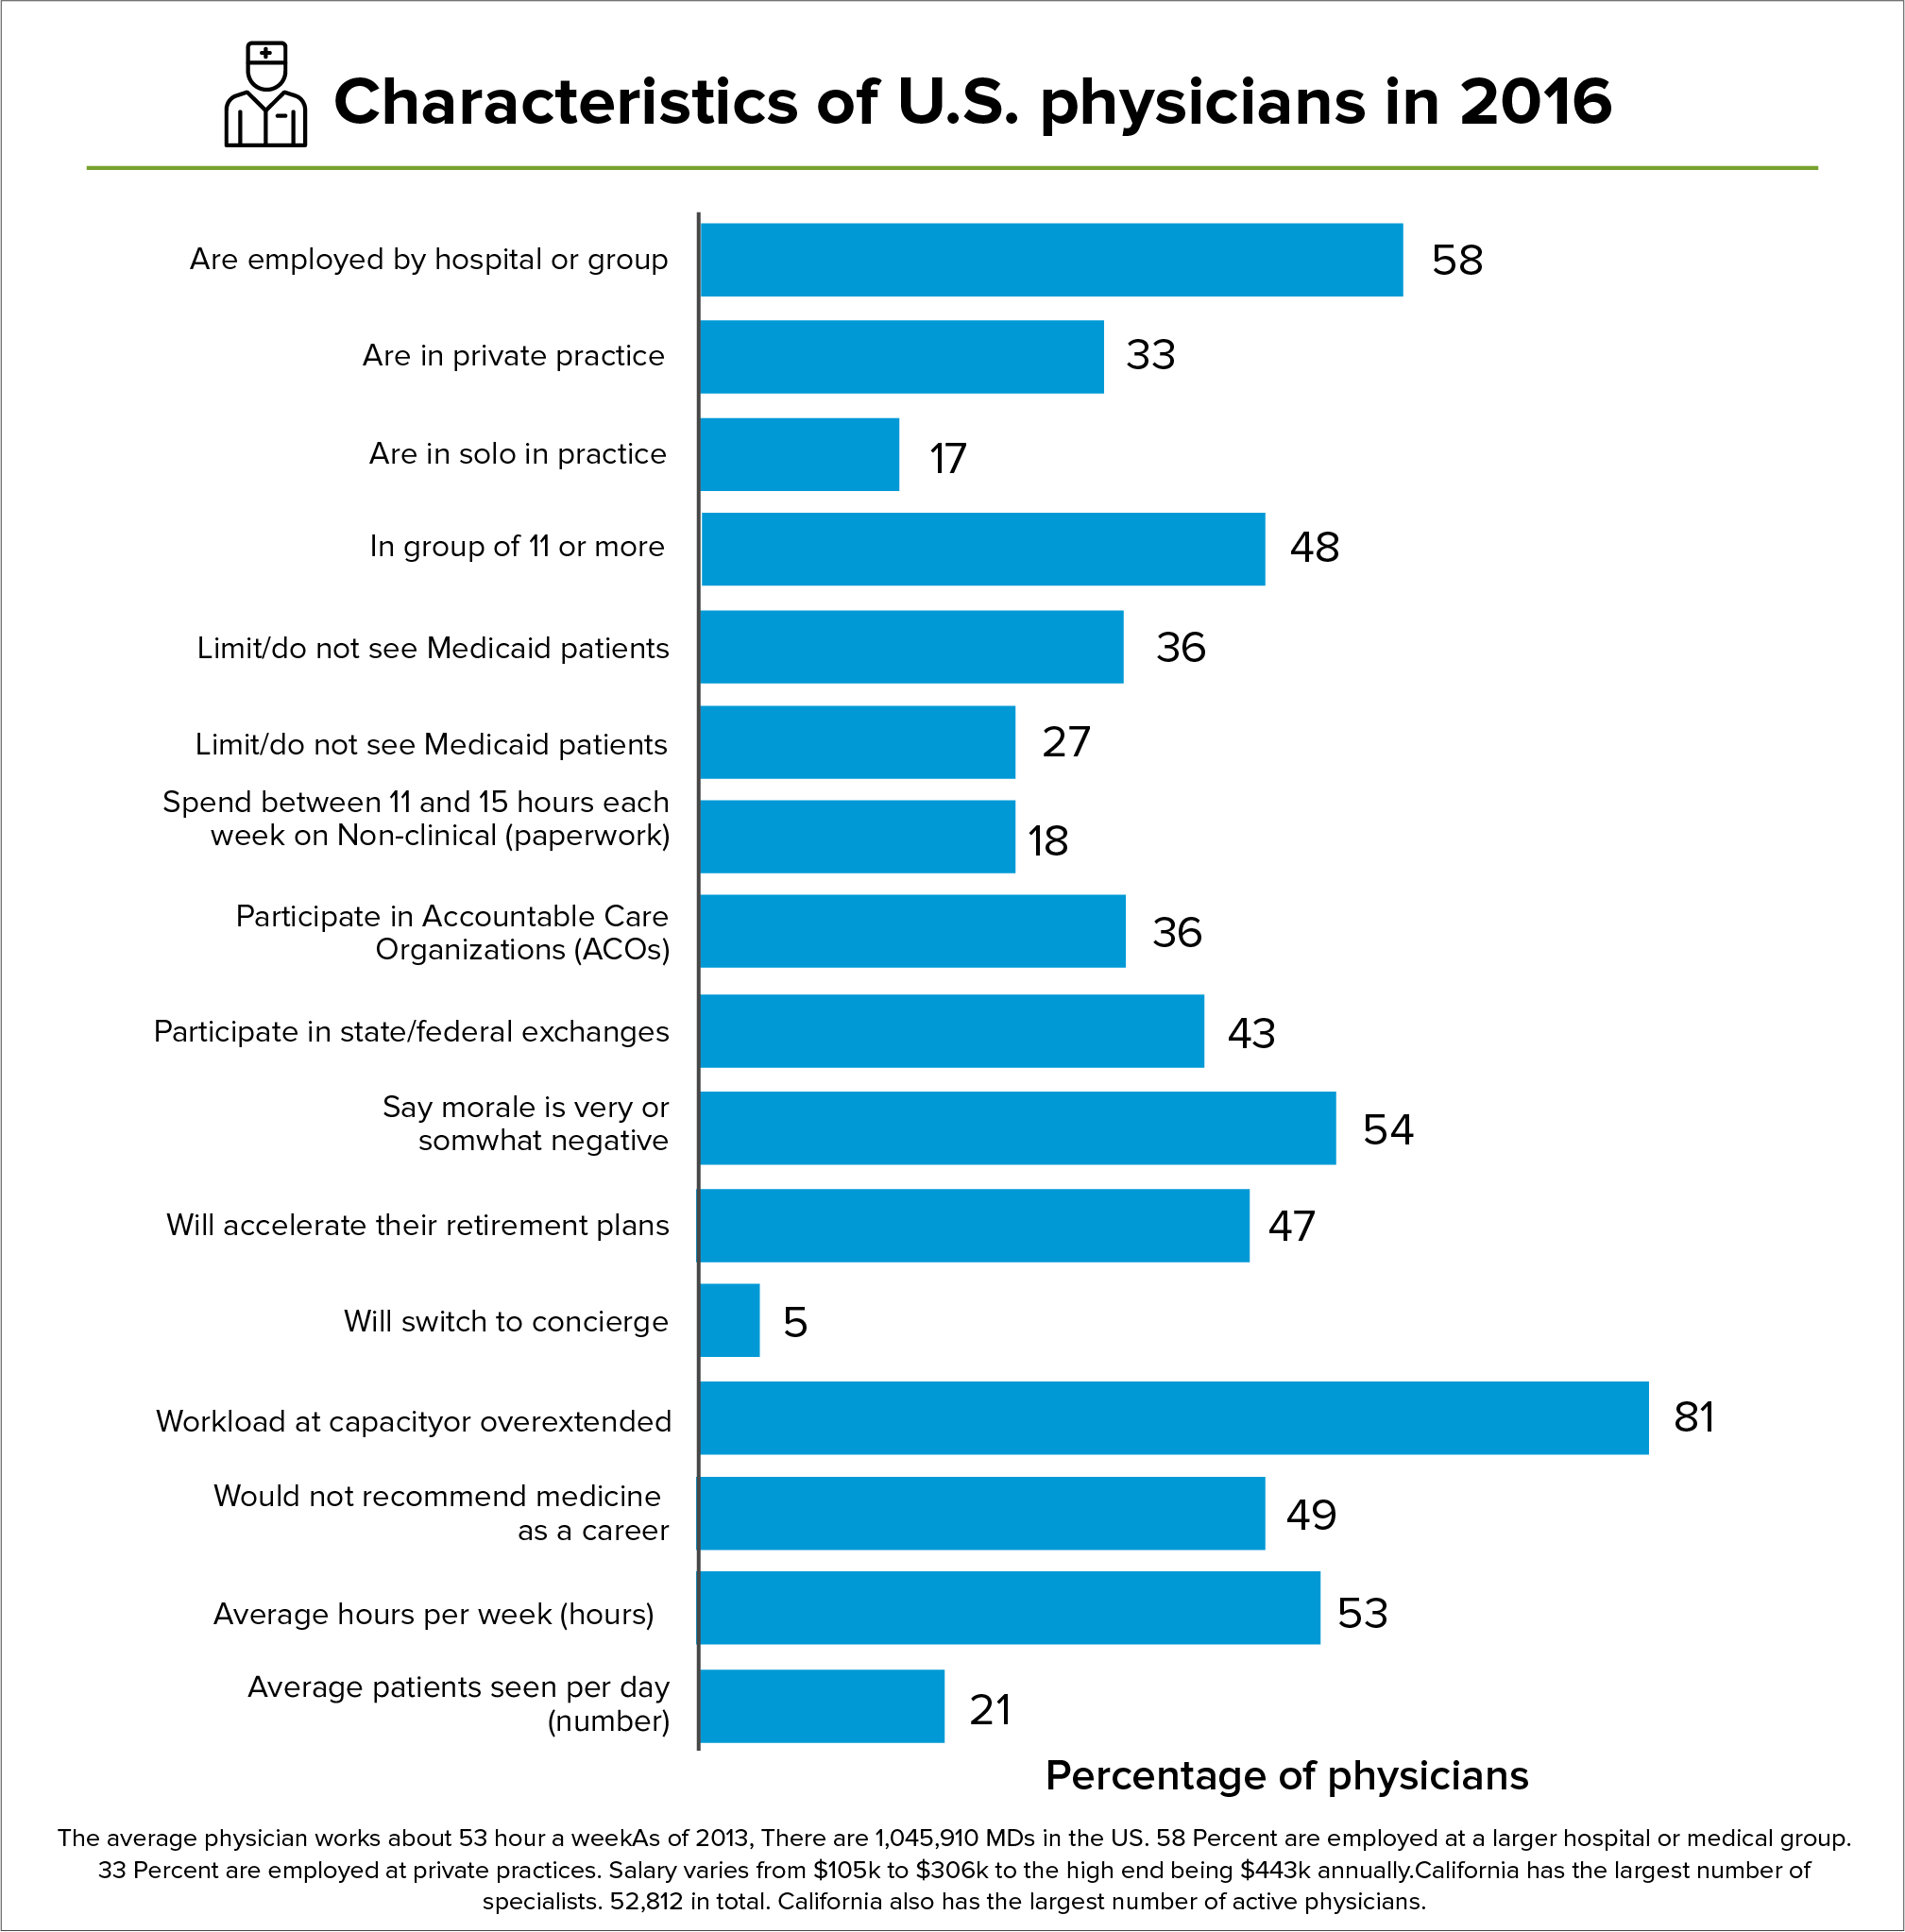 Characteristics of U.S. physicians in 2016